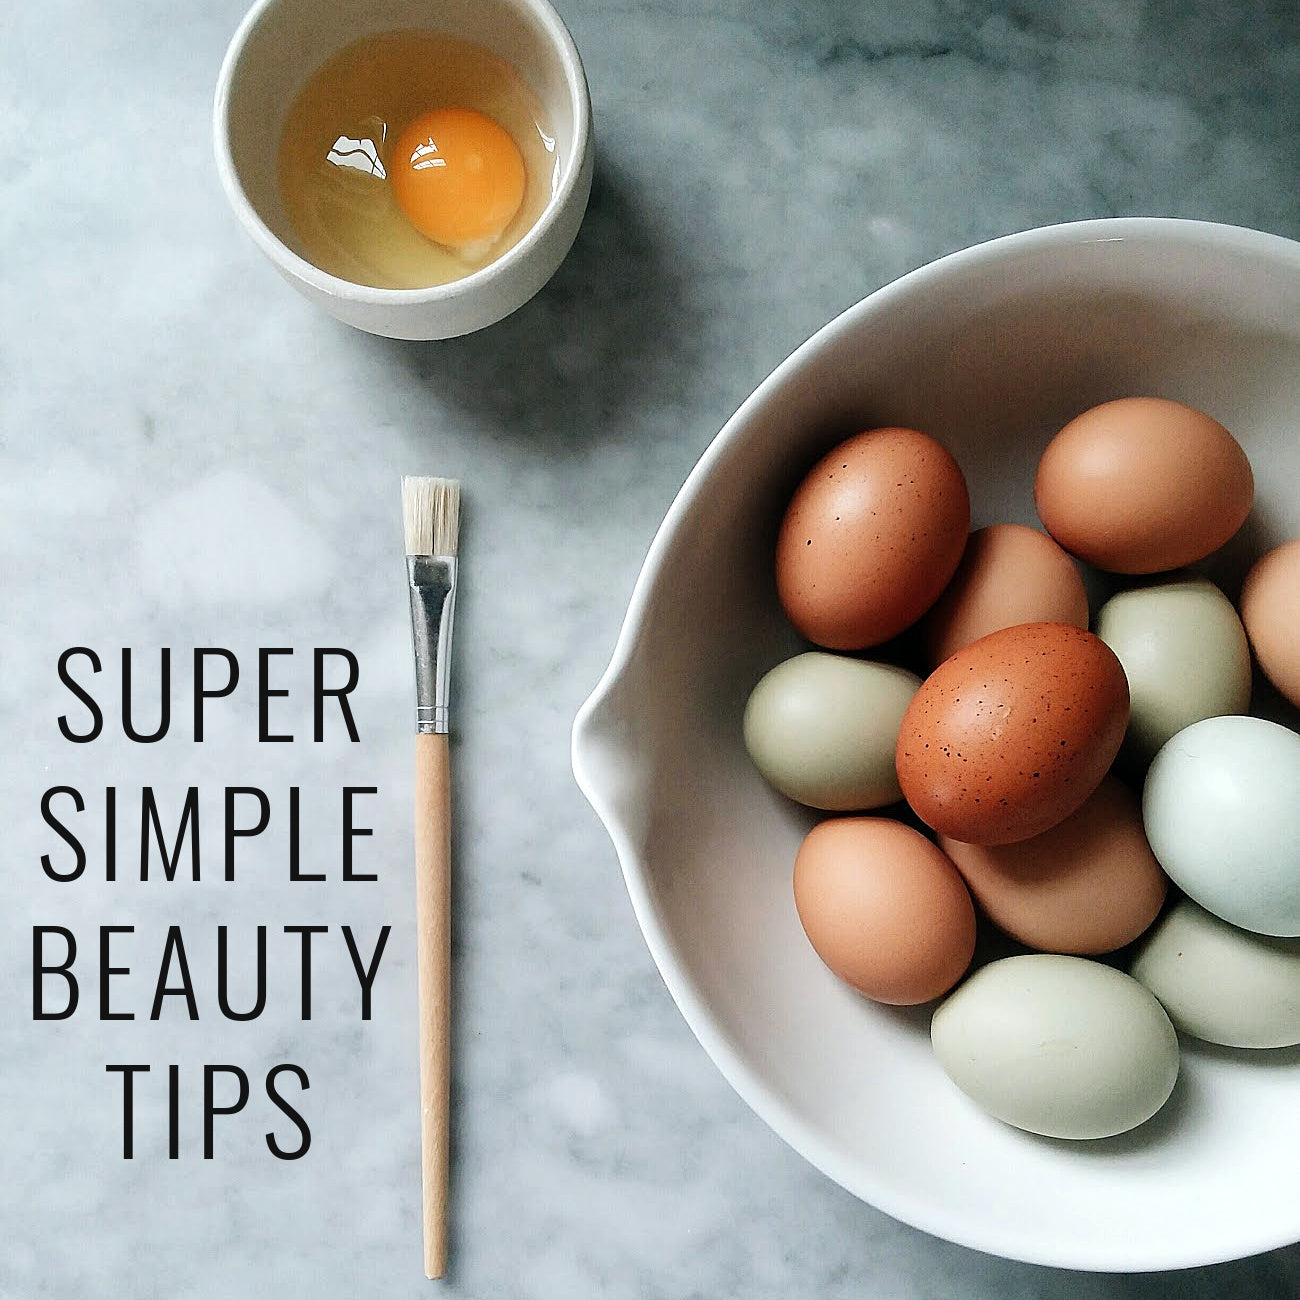 Super Simple Beauty Tips